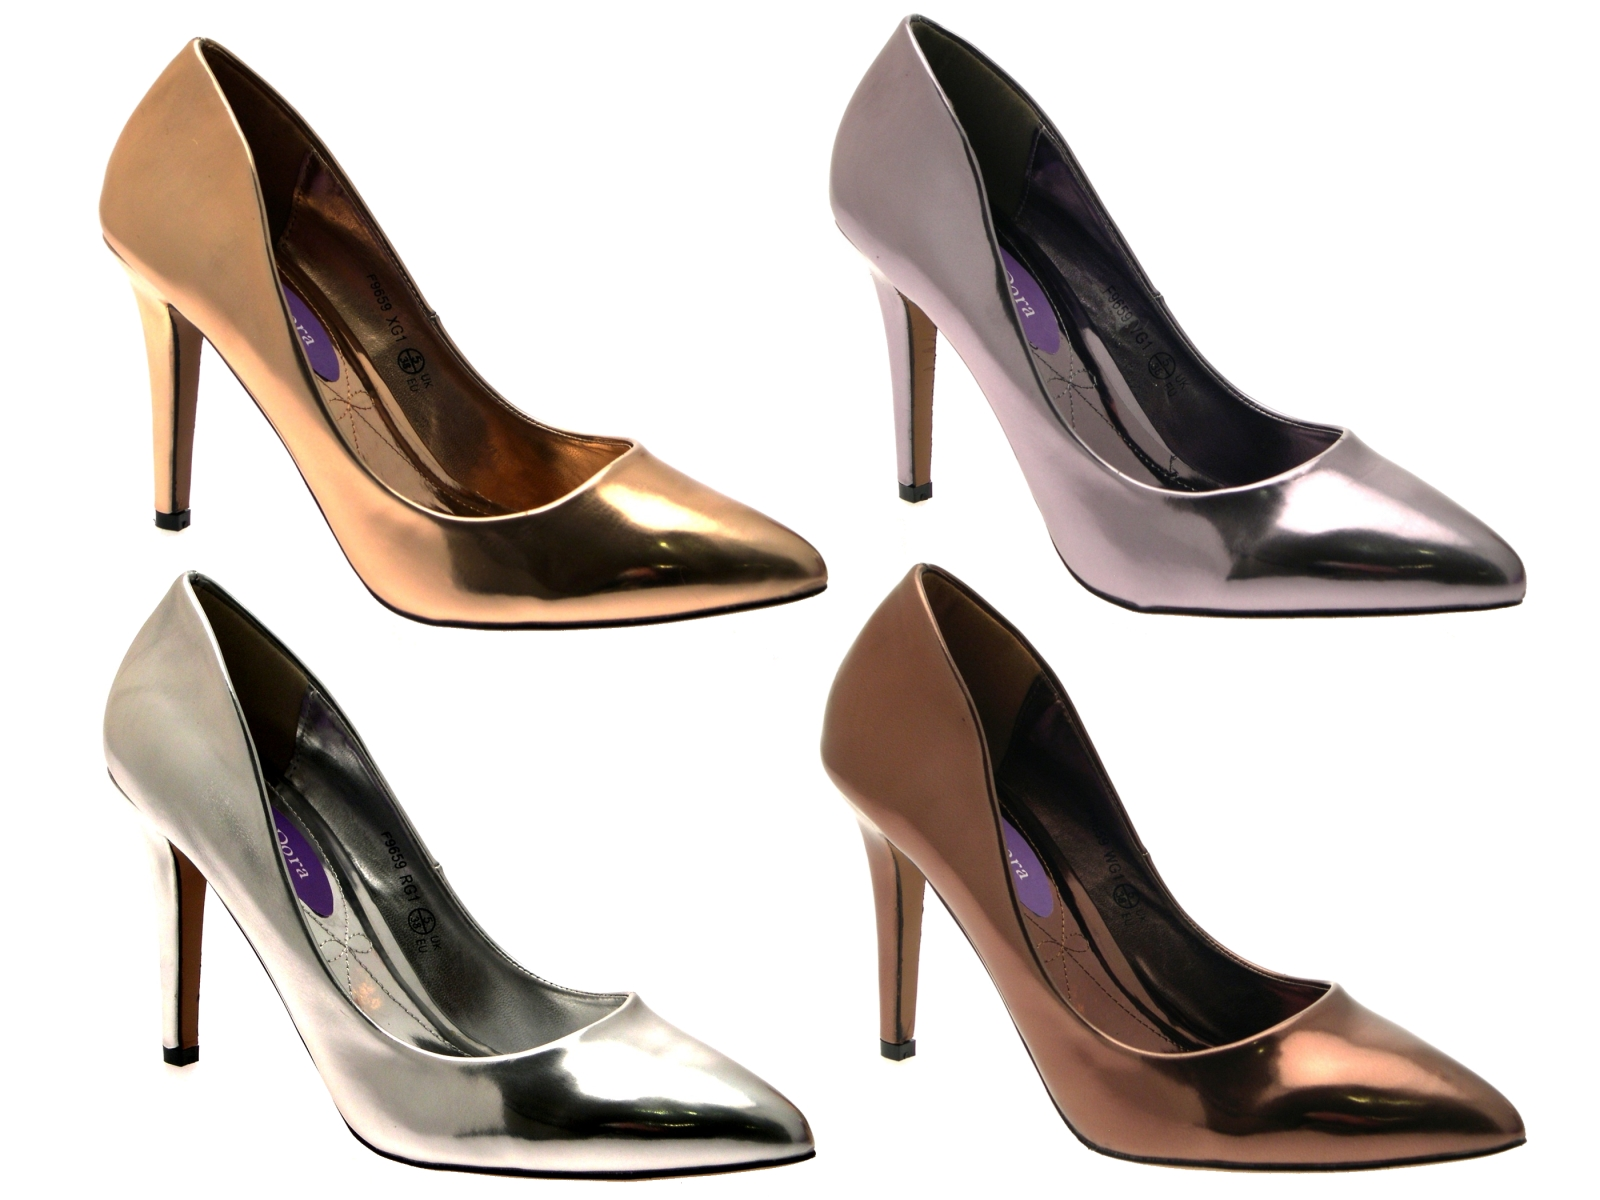 Womens-Metallic-Pointed-Toe-Court-Stiletto-High-Heels-Ladies-Work-Office-Shoes thumbnail 9